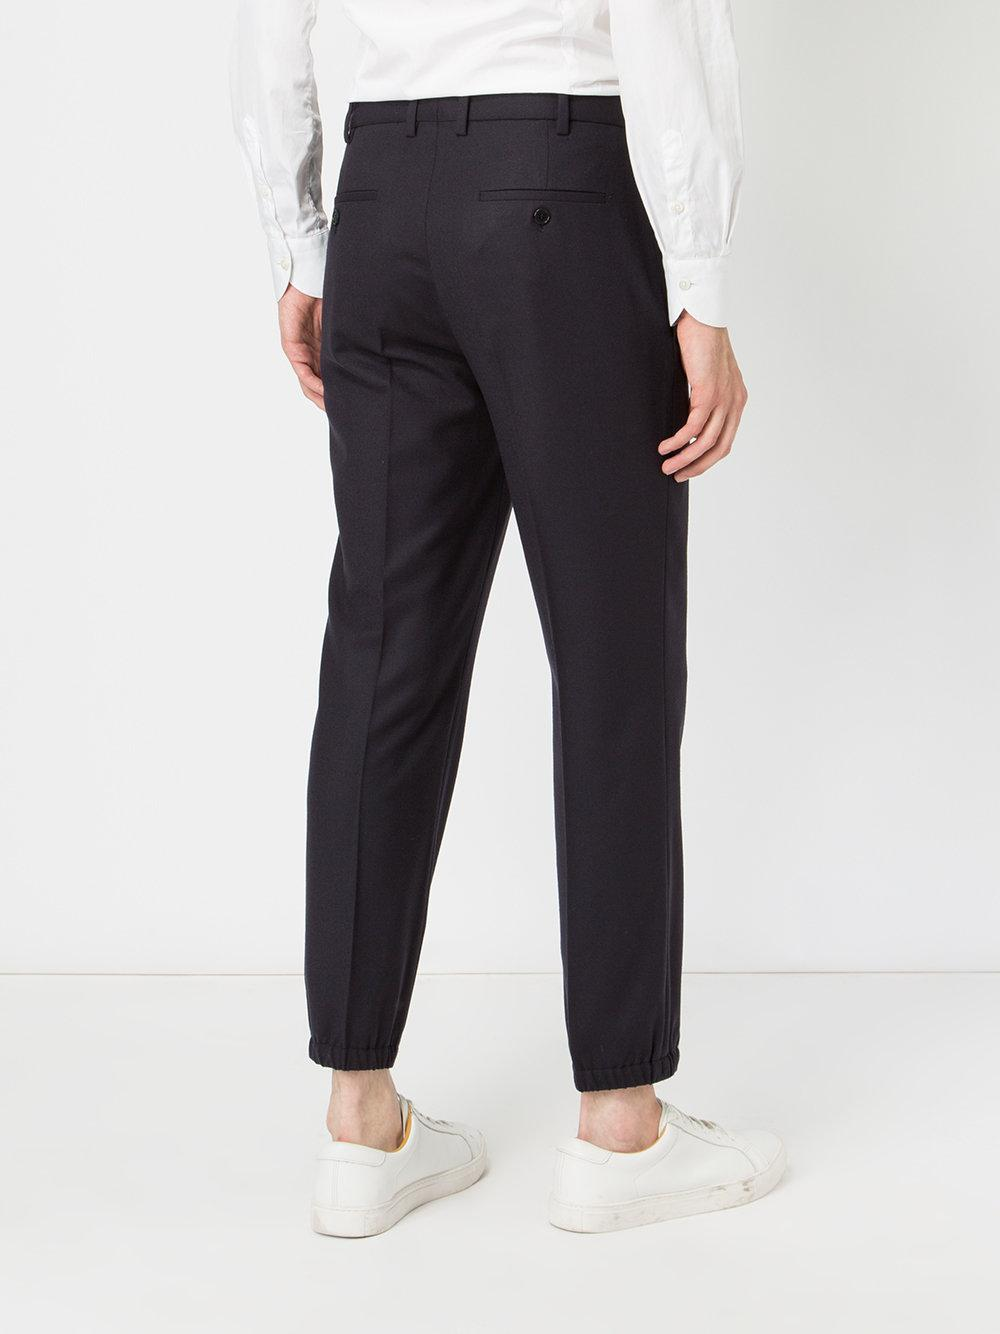 tailored fitted trousers - Blue Neil Barrett U7C3TcL4p